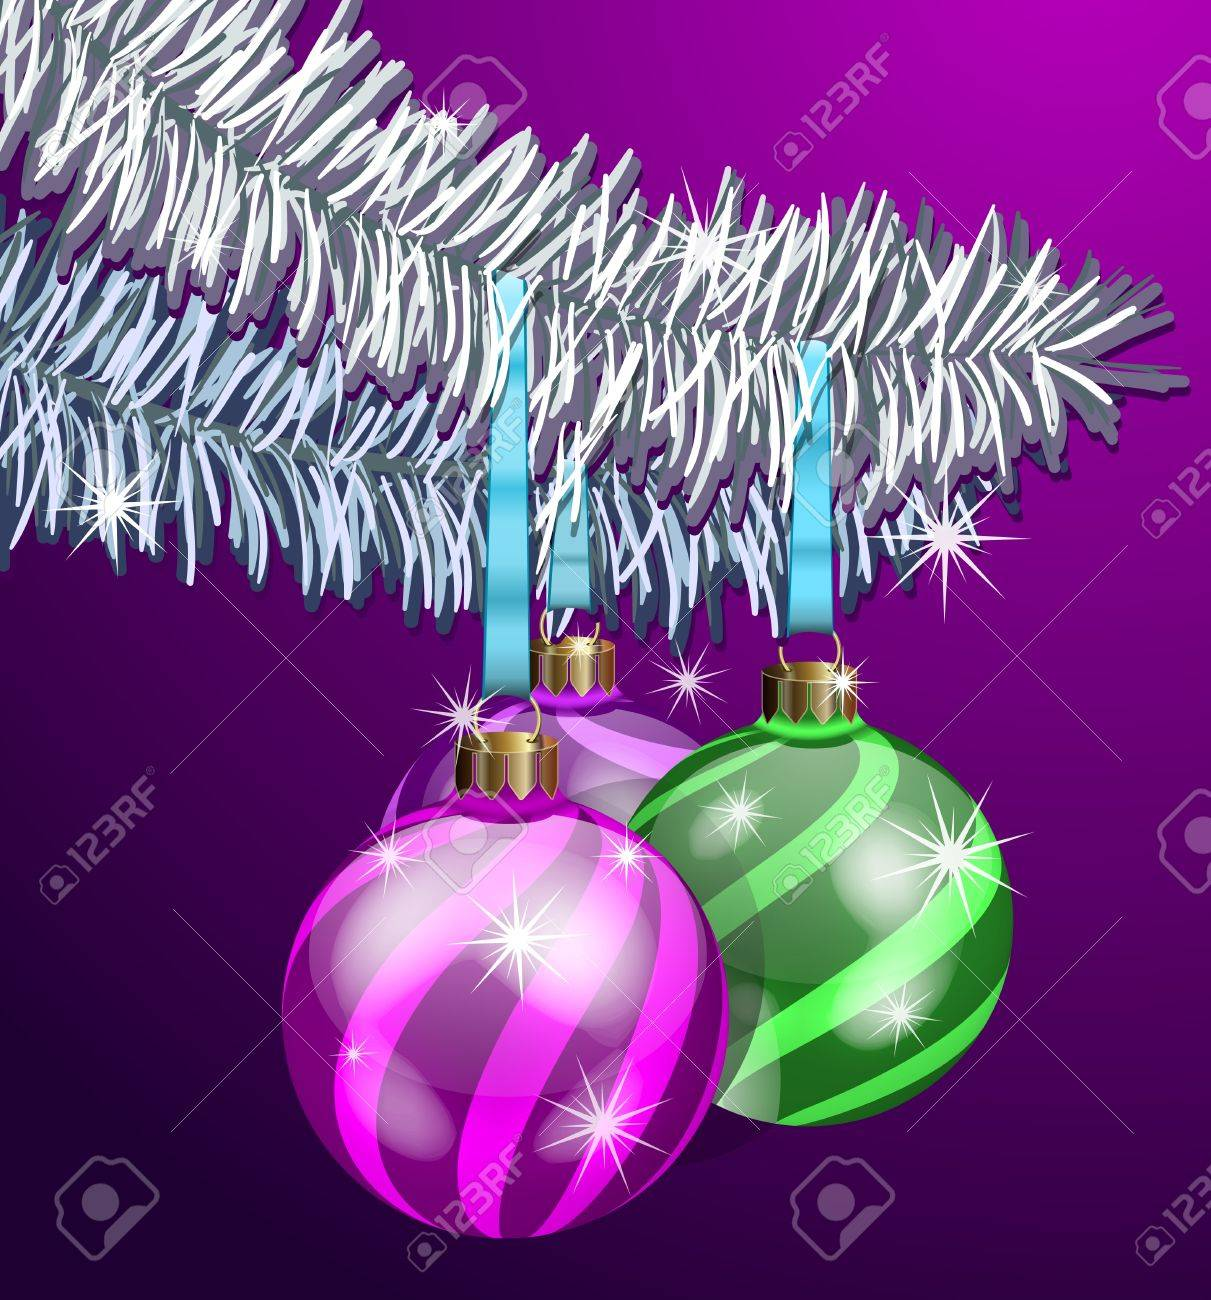 The Realistic Christmas Balls on fir branches Stock Vector - 11674304